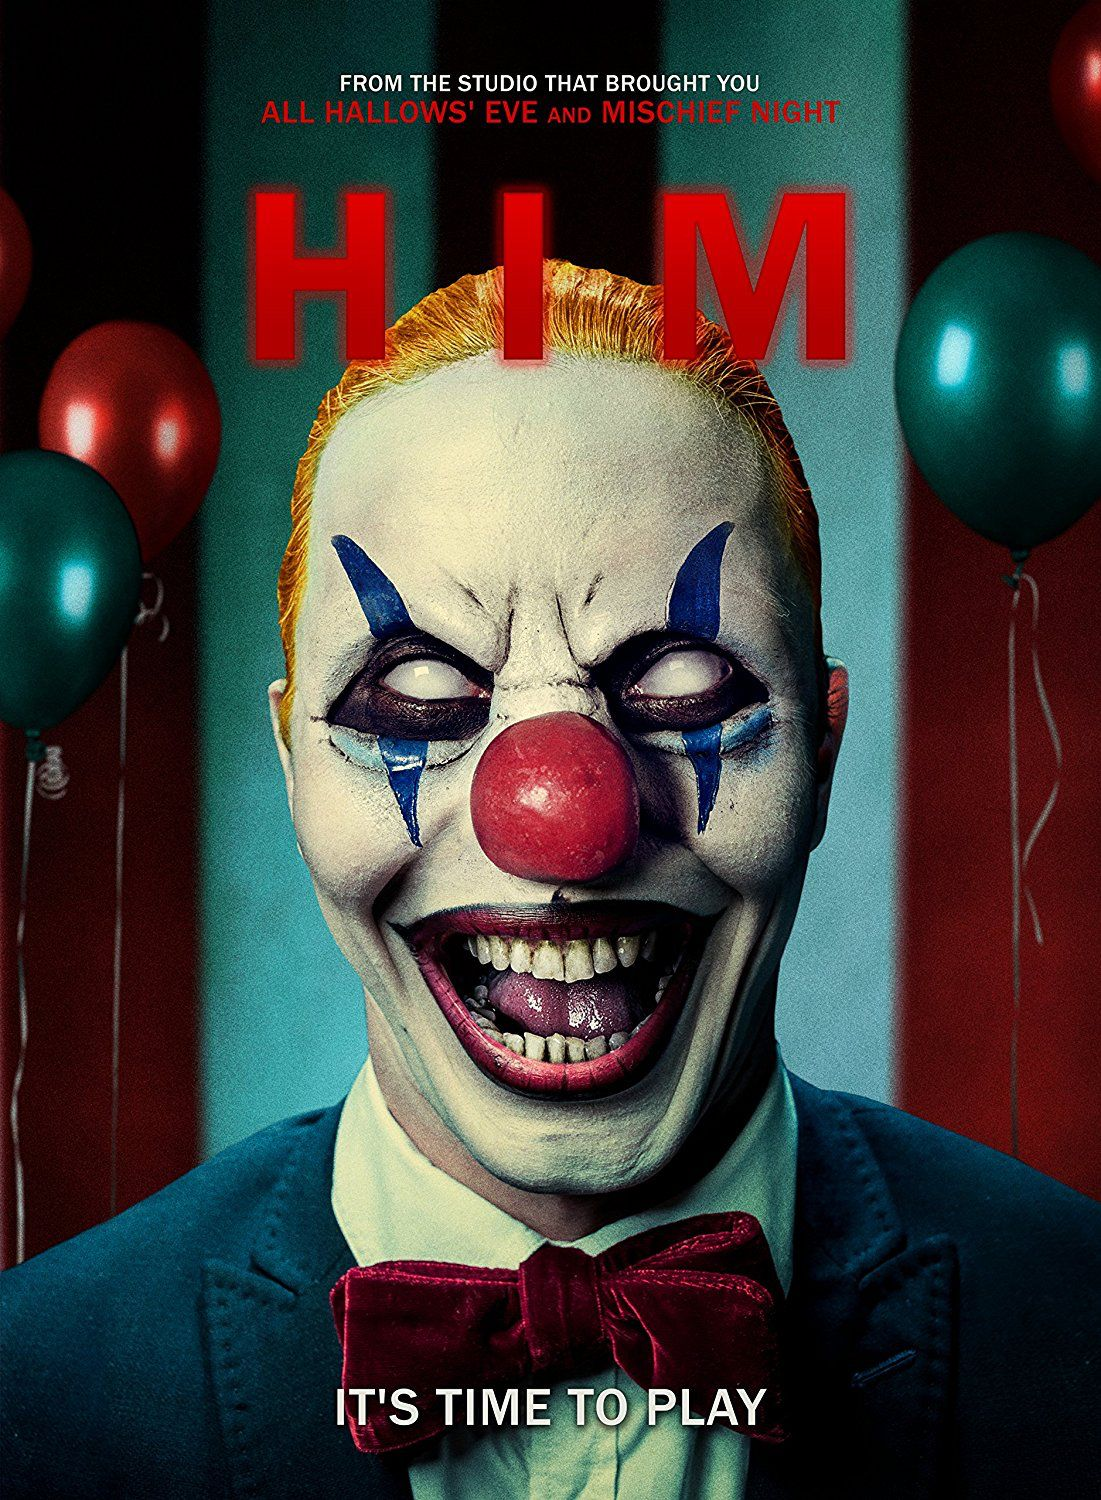 Him Dvd Wownow Horror Dvds Movies Horror Movies Horror